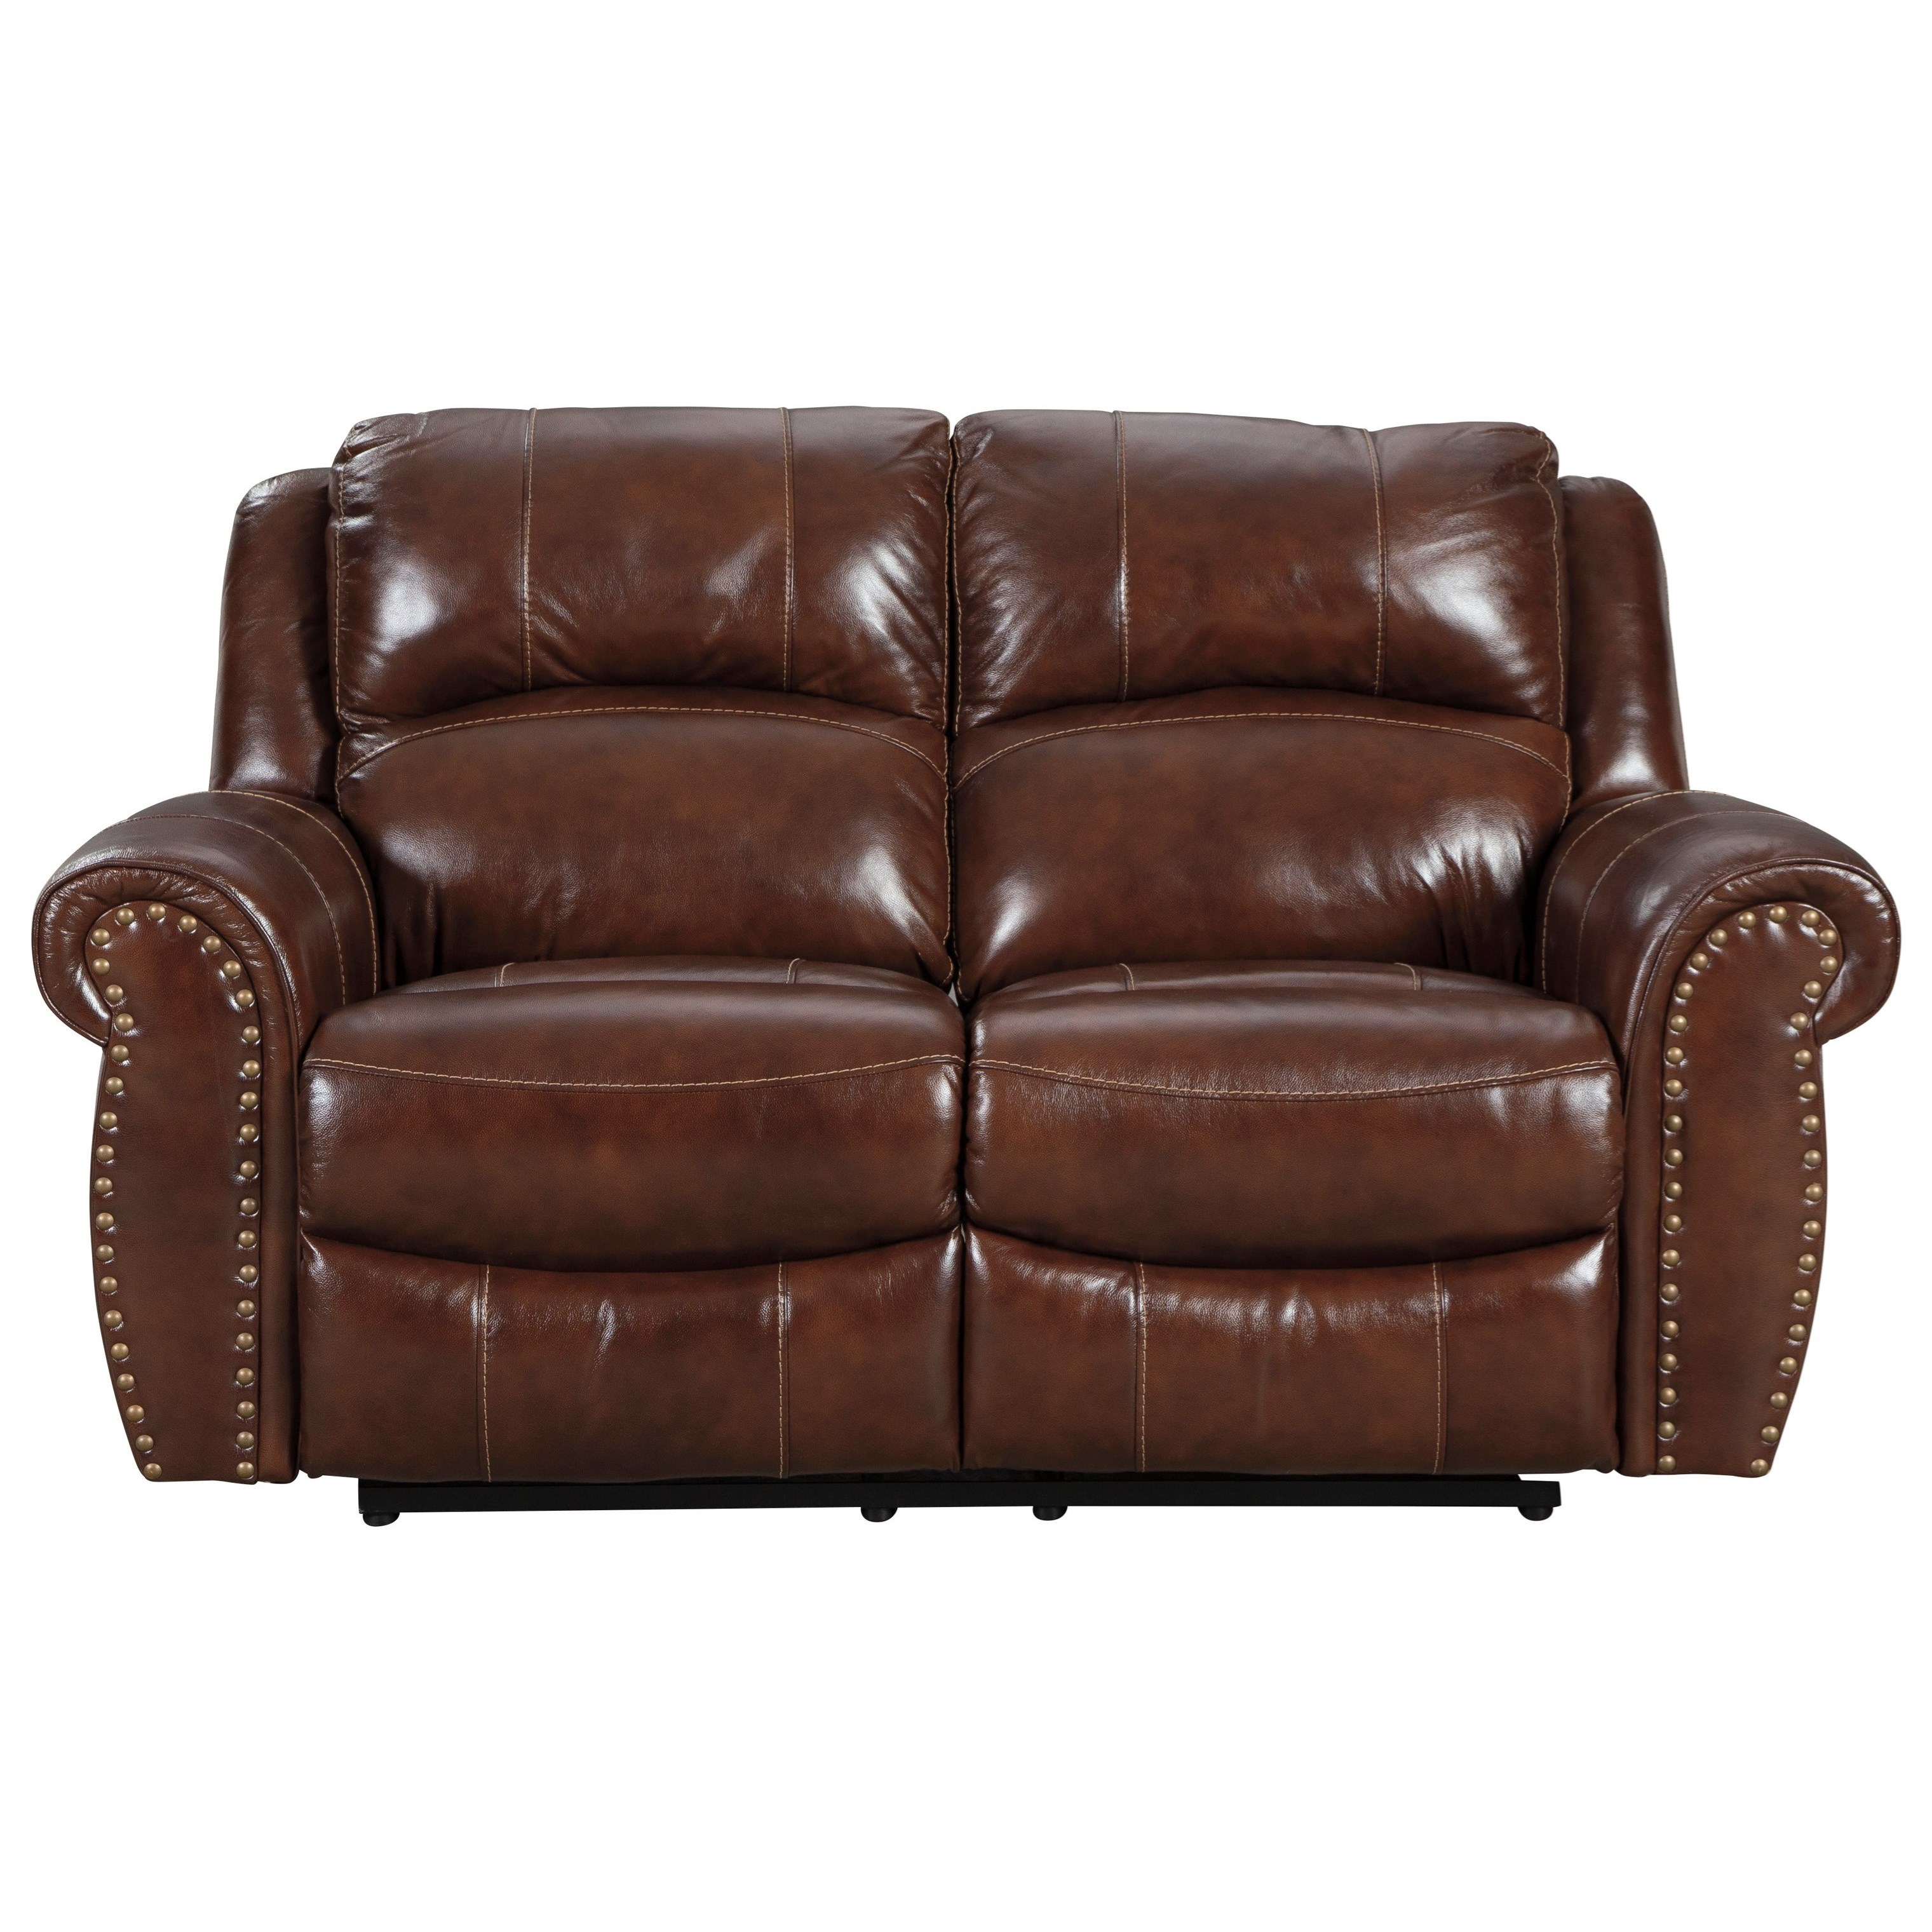 Awe Inspiring Traditional Power Reclining Loveseat With Nailhead Trim By Gamerscity Chair Design For Home Gamerscityorg